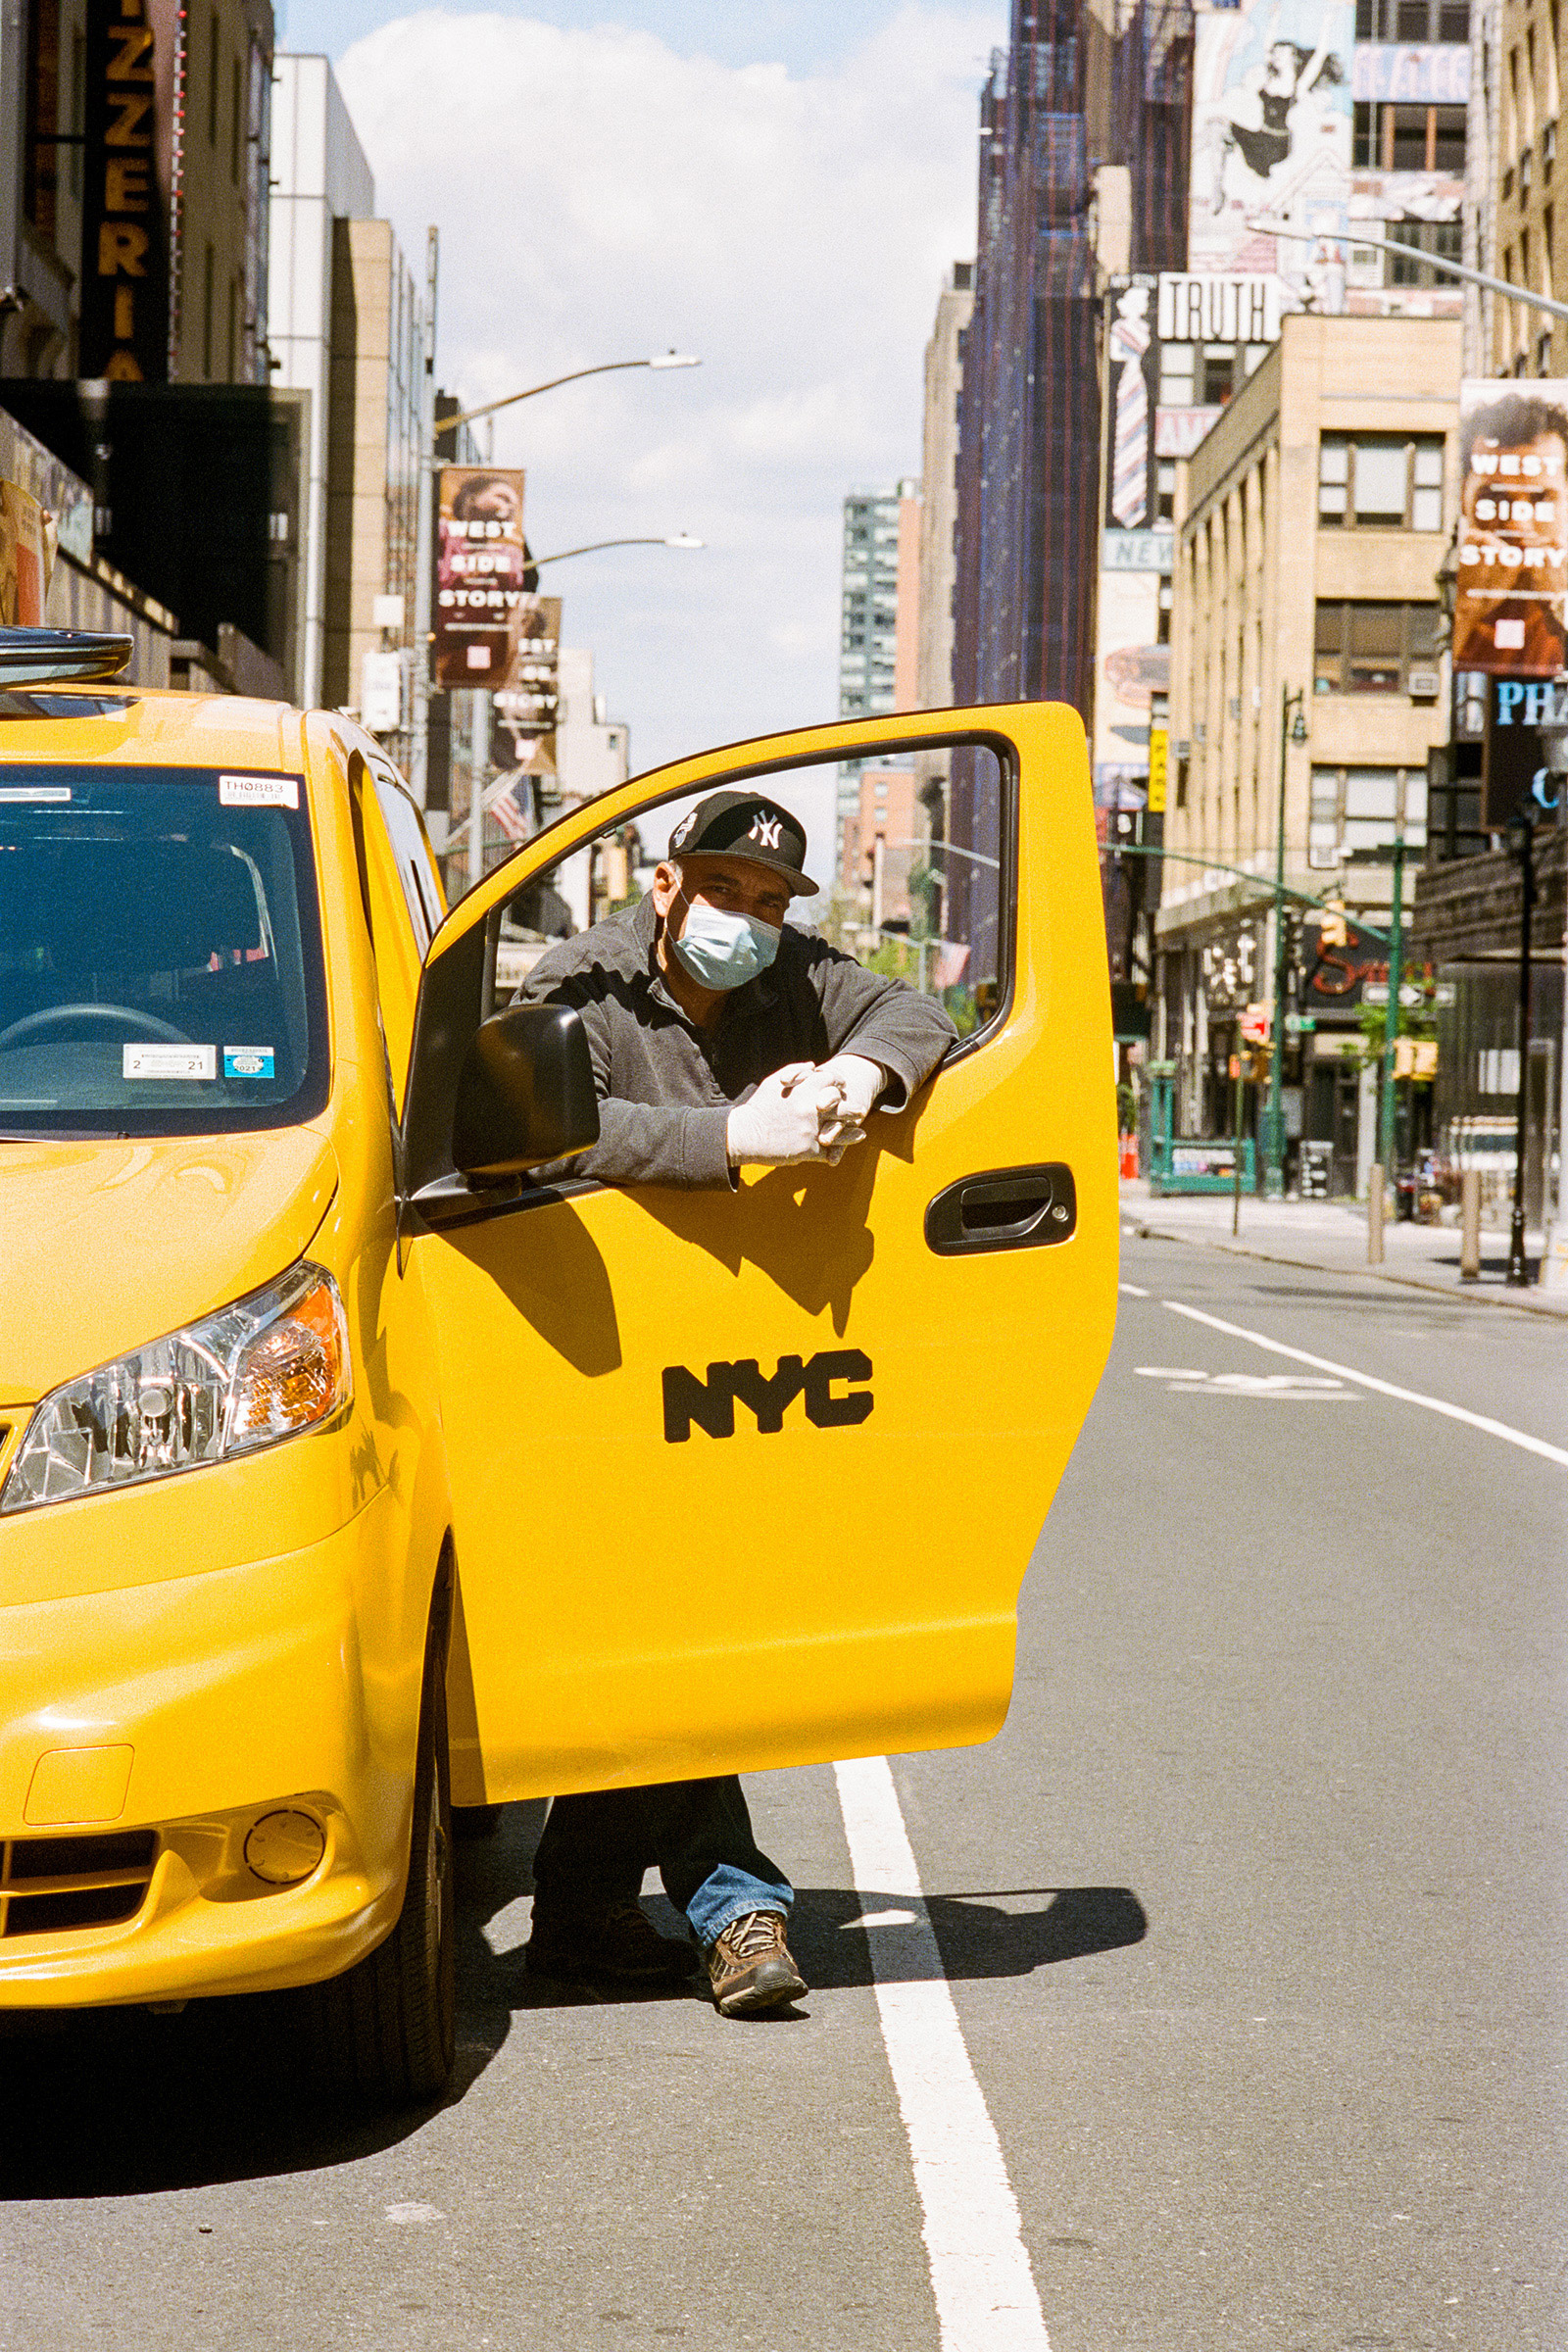 Mohamed Eleissawy, 63, Manhattan.  New York City's Taxi Drivers Are in Peril as They Brave the Coronavirus and Uncertain Futures,  May 15.